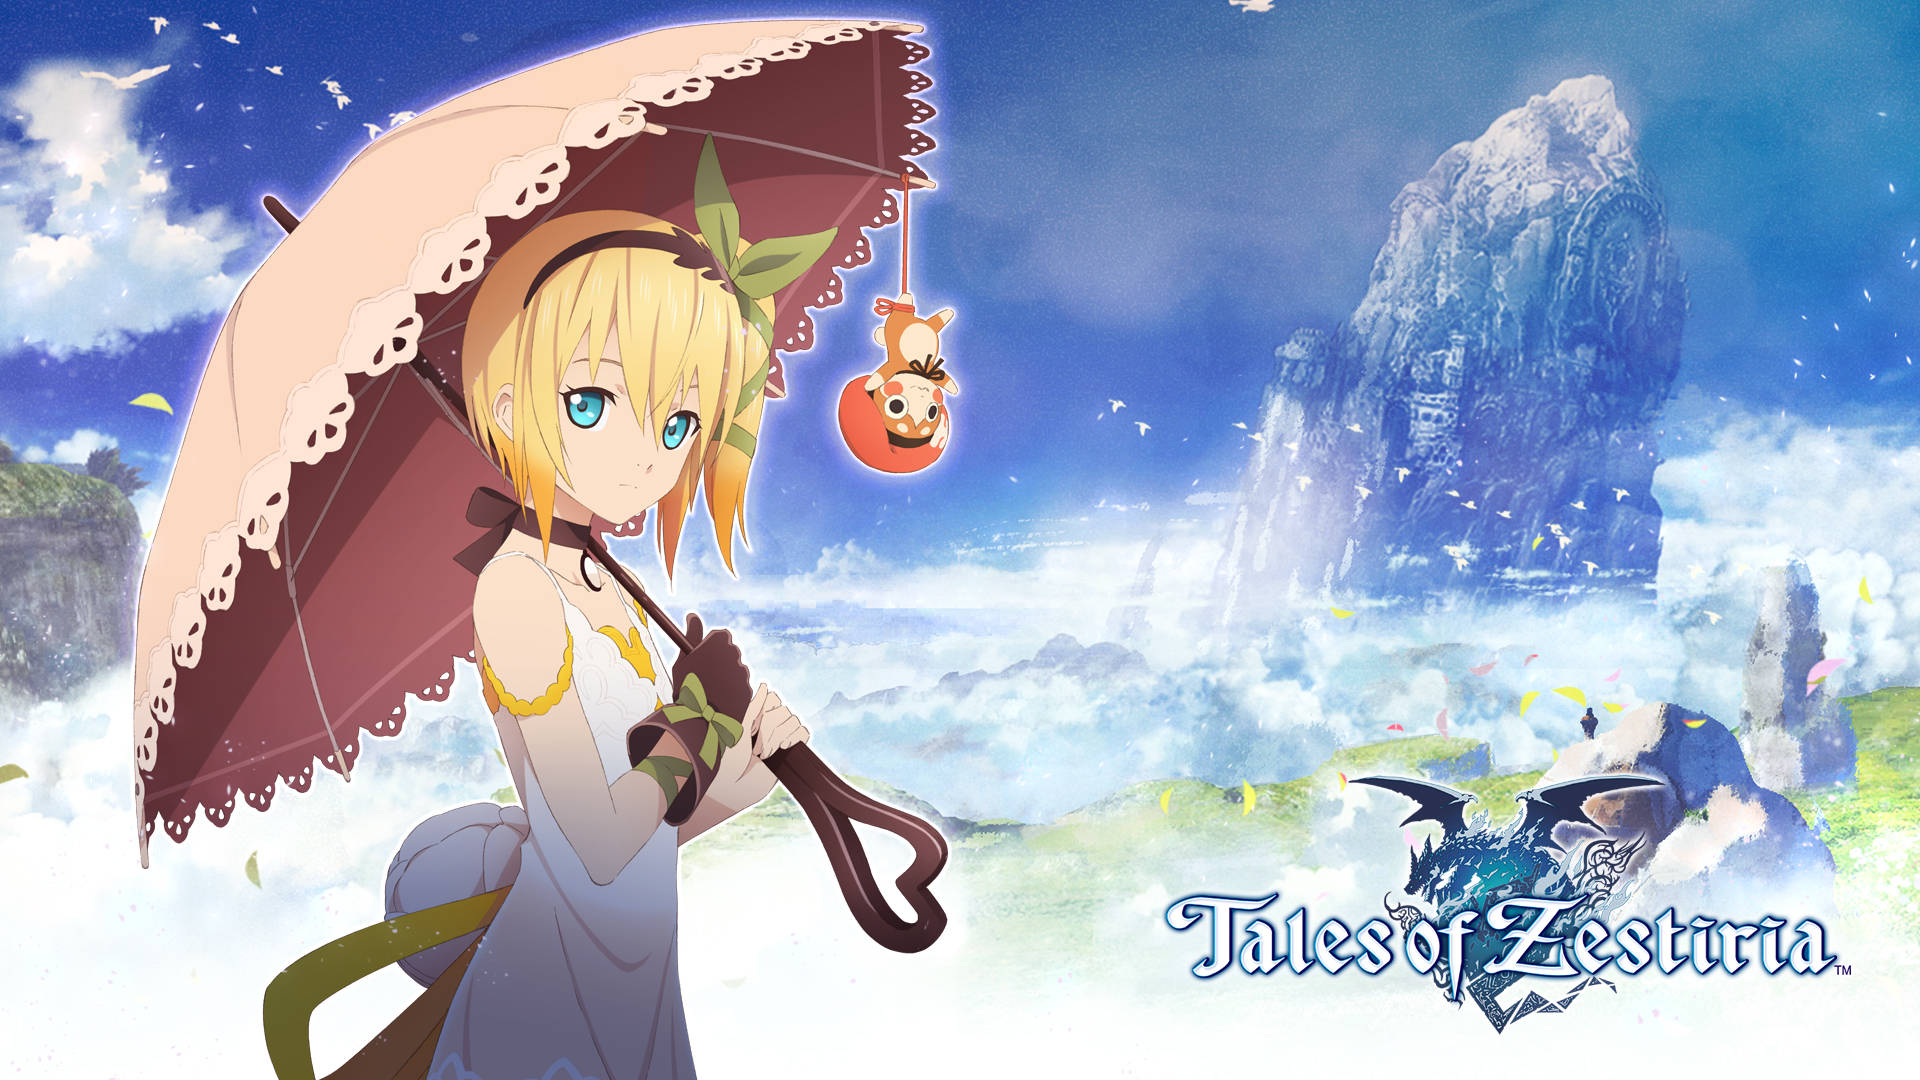 hd game wallpapers 1080p 2014